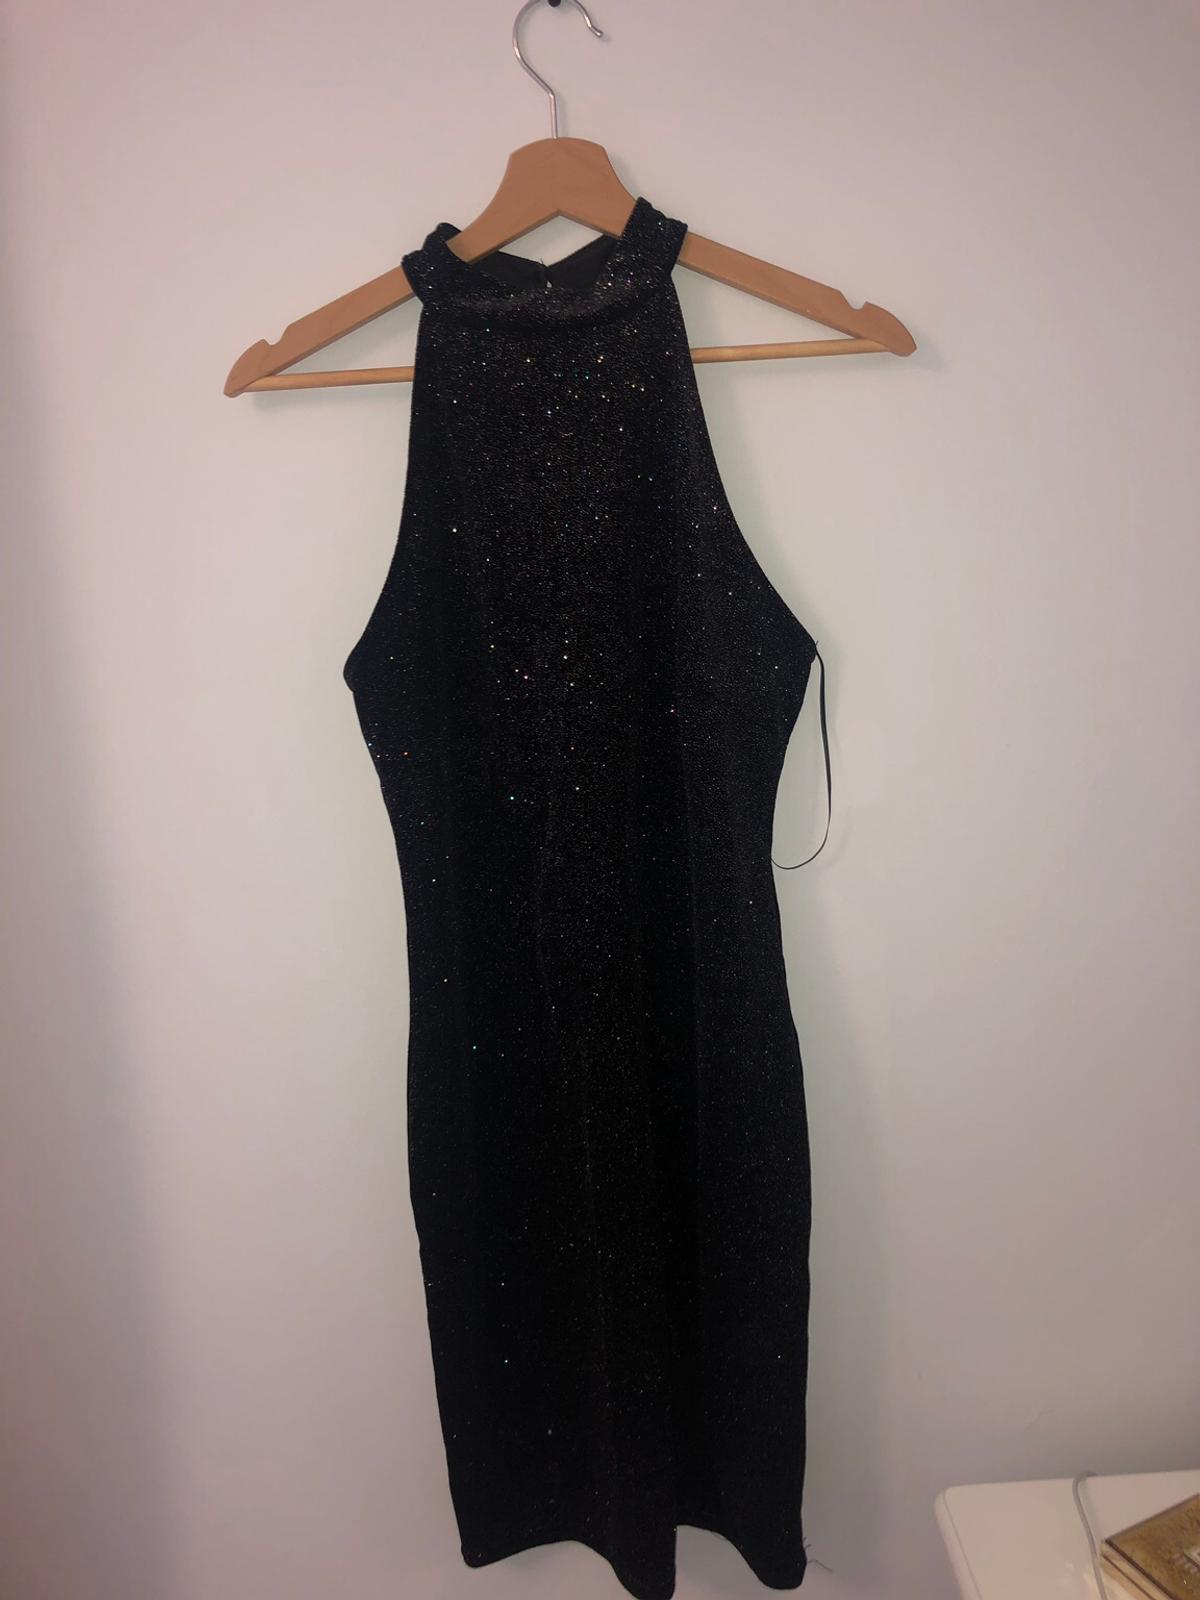 Sparkly high neck line dress from new look. Only been worn once. Very flattering. Very good quality. UK 12.